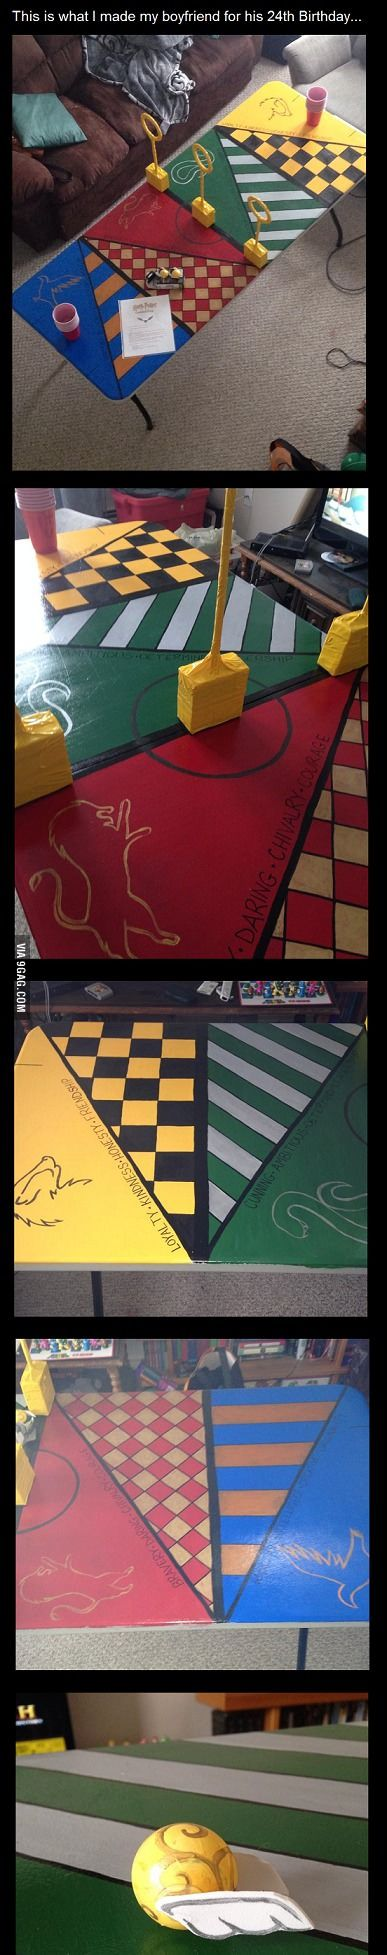 1000 images about harry potter crafts on pinterest for Table quidditch